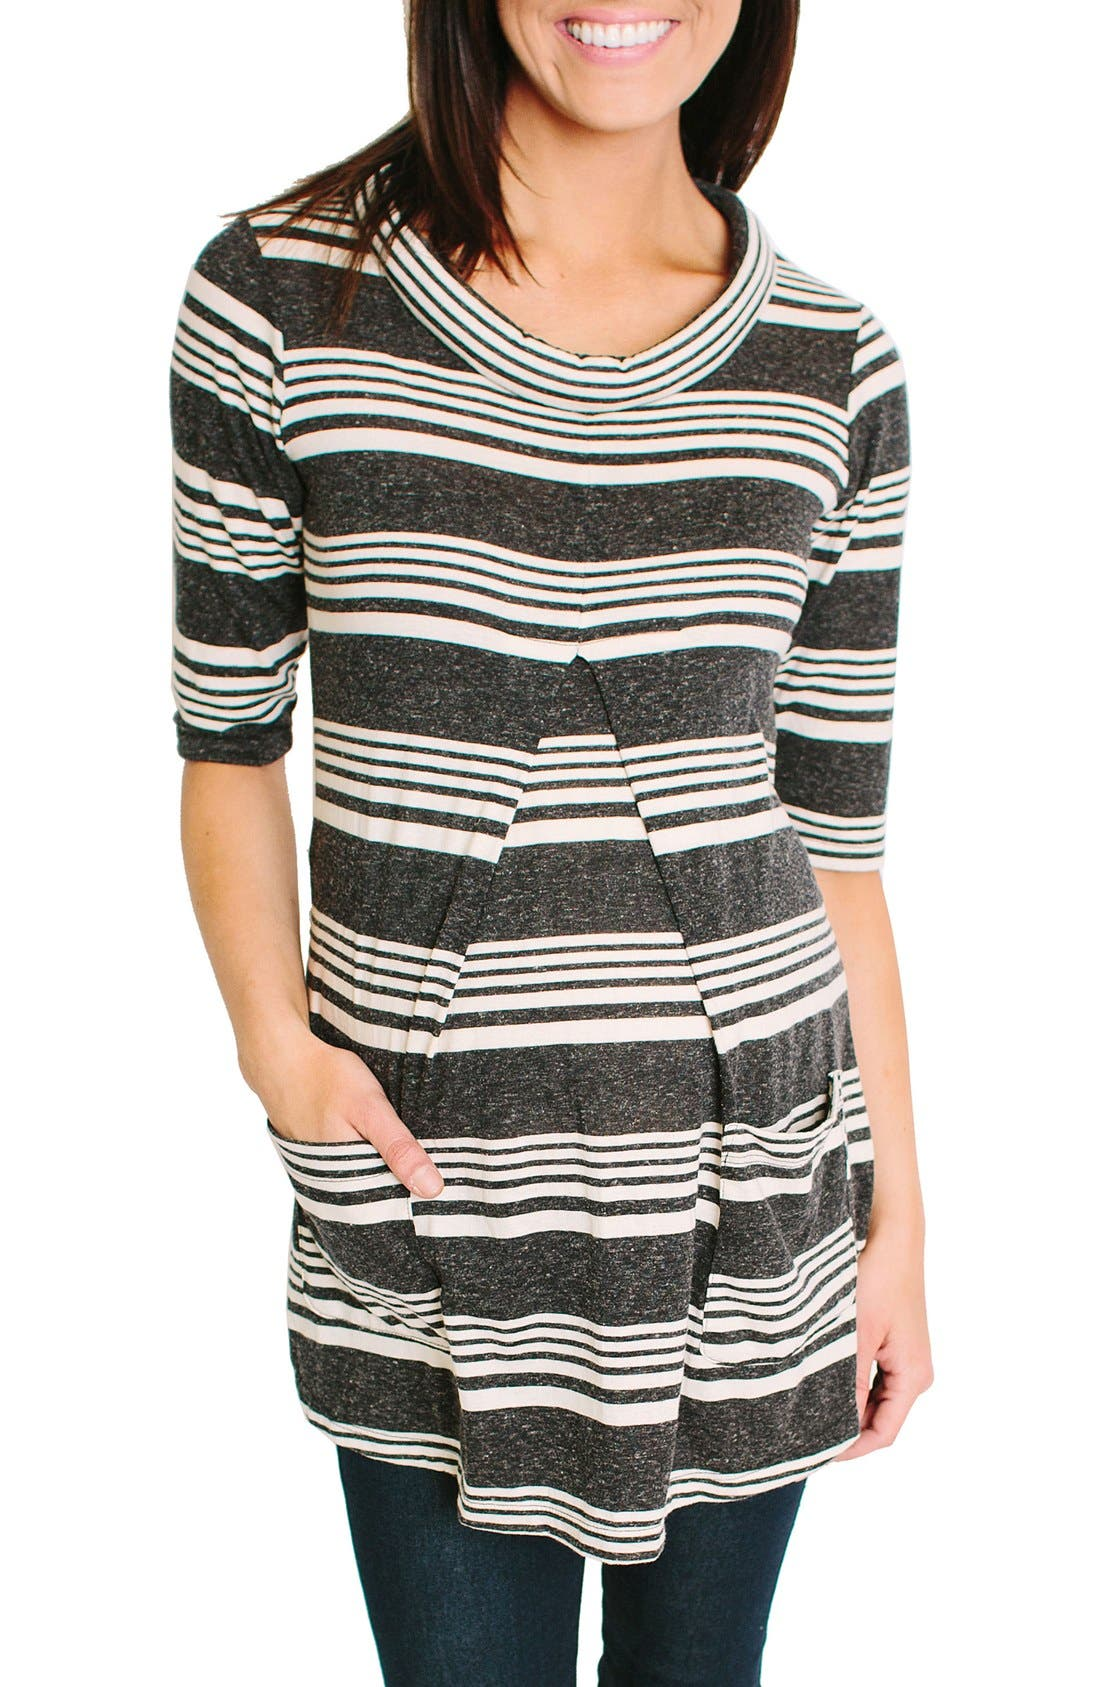 Alternate Image 1 Selected - Nom Maternity Clio Maternity Top